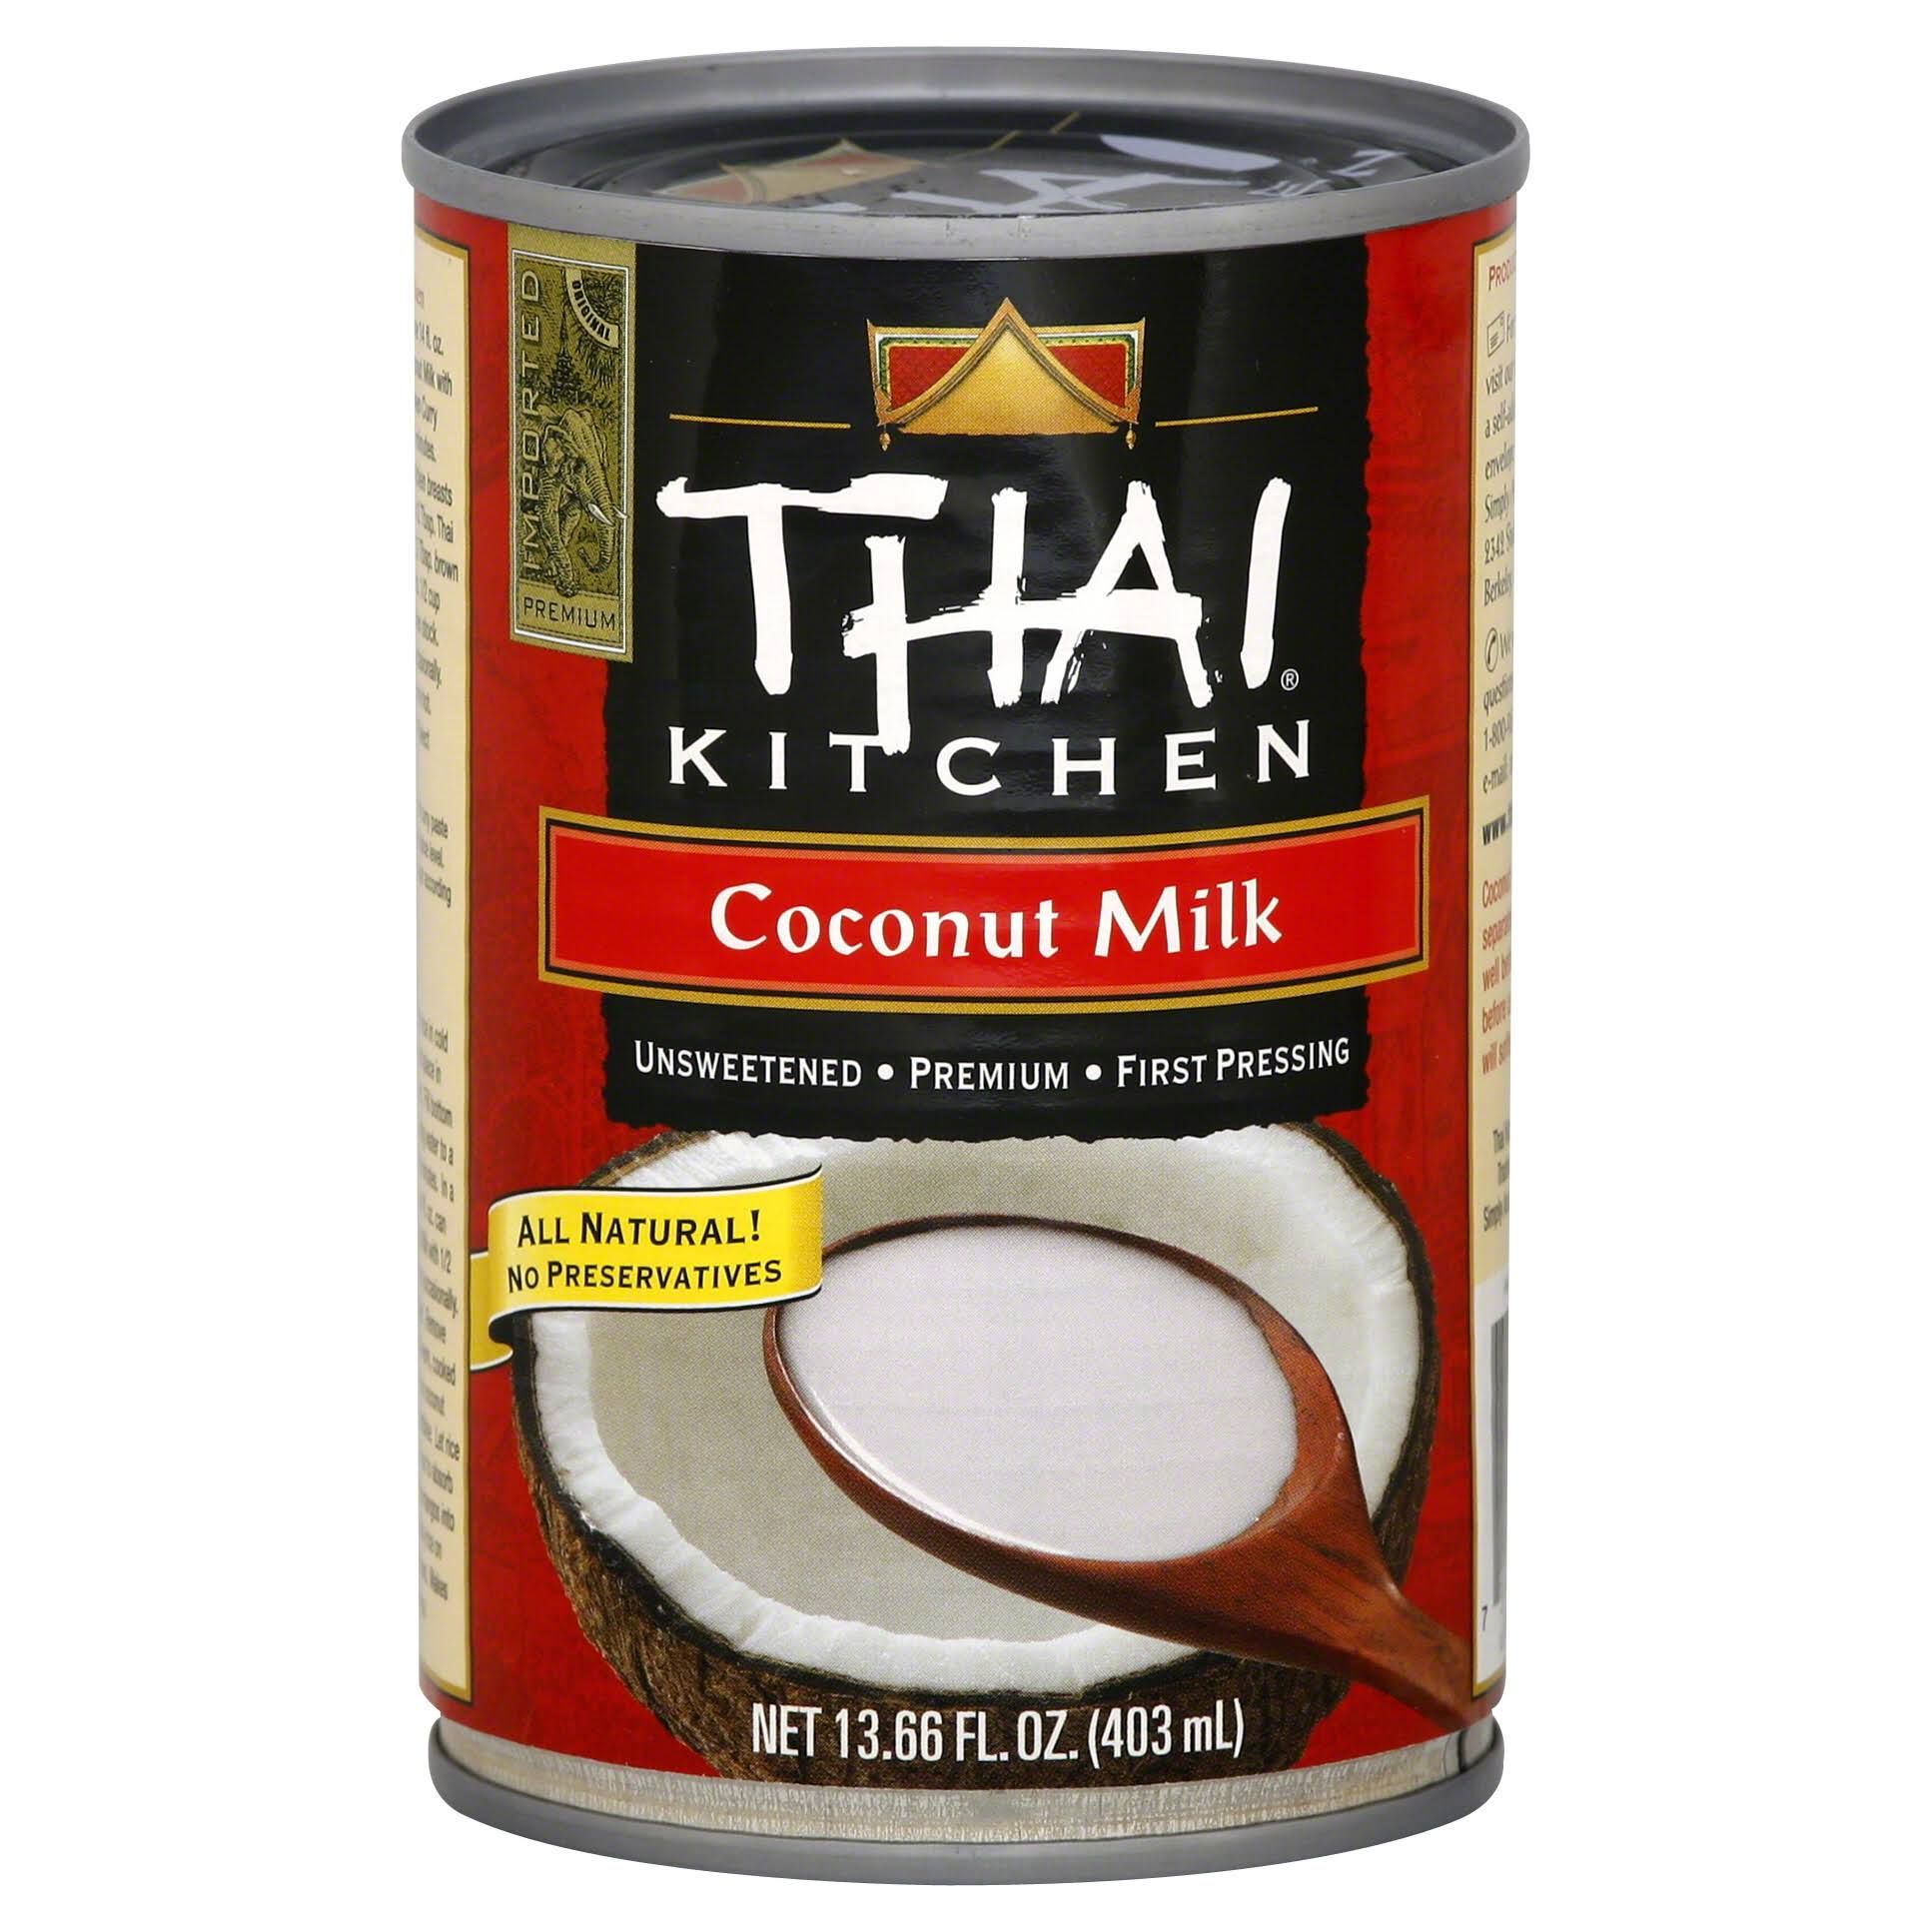 Thai Kitchen Coconut Milk - 403ml